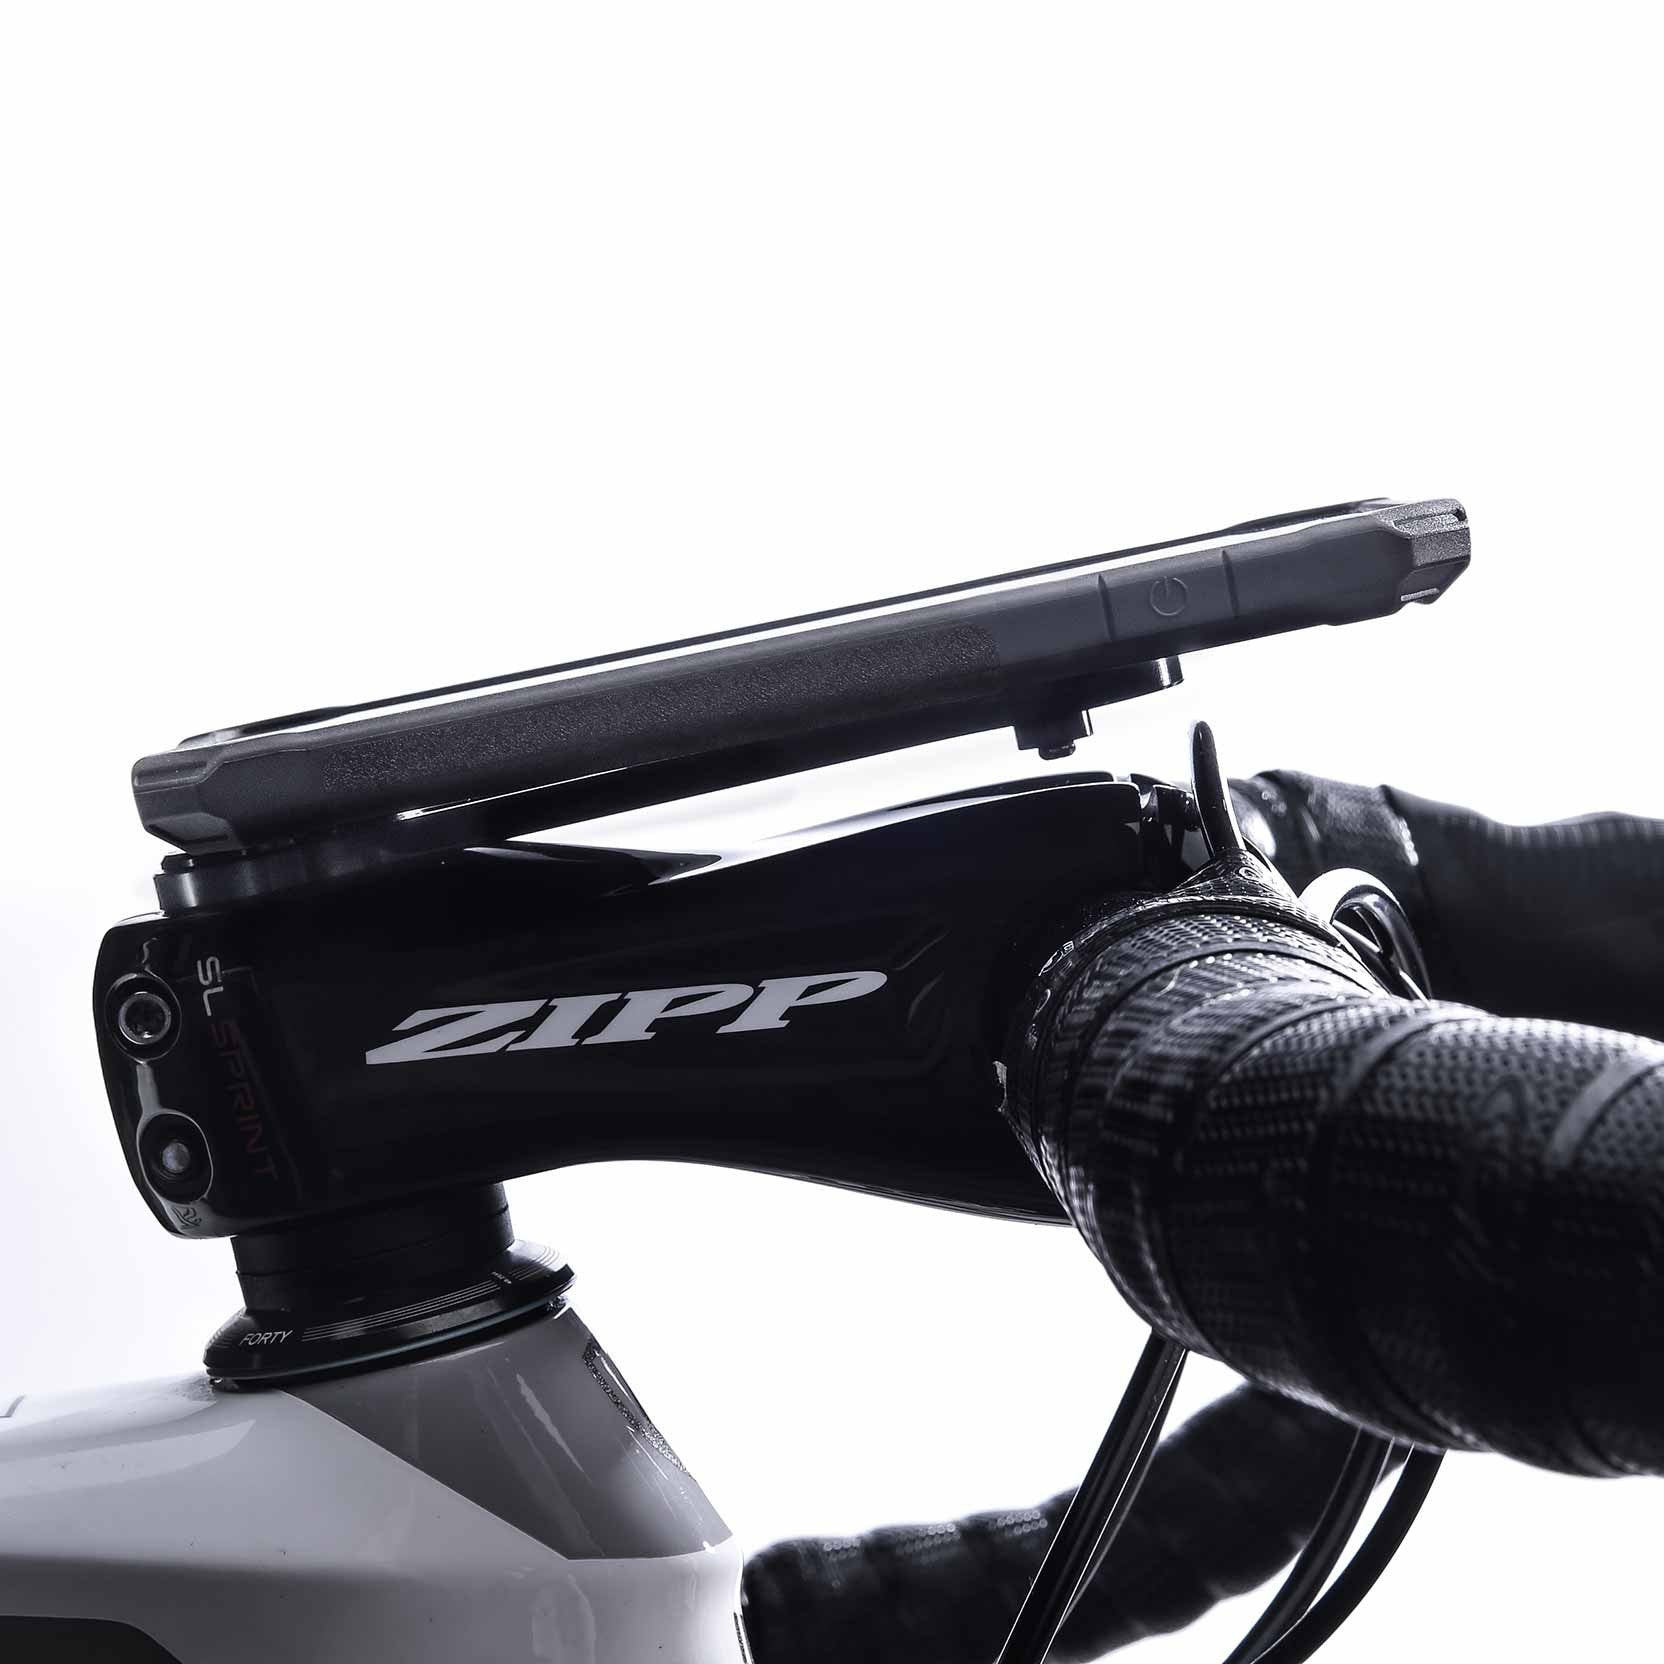 Iphone Bike Mount >> Iphone Pro Lite Bike Mount Rokform